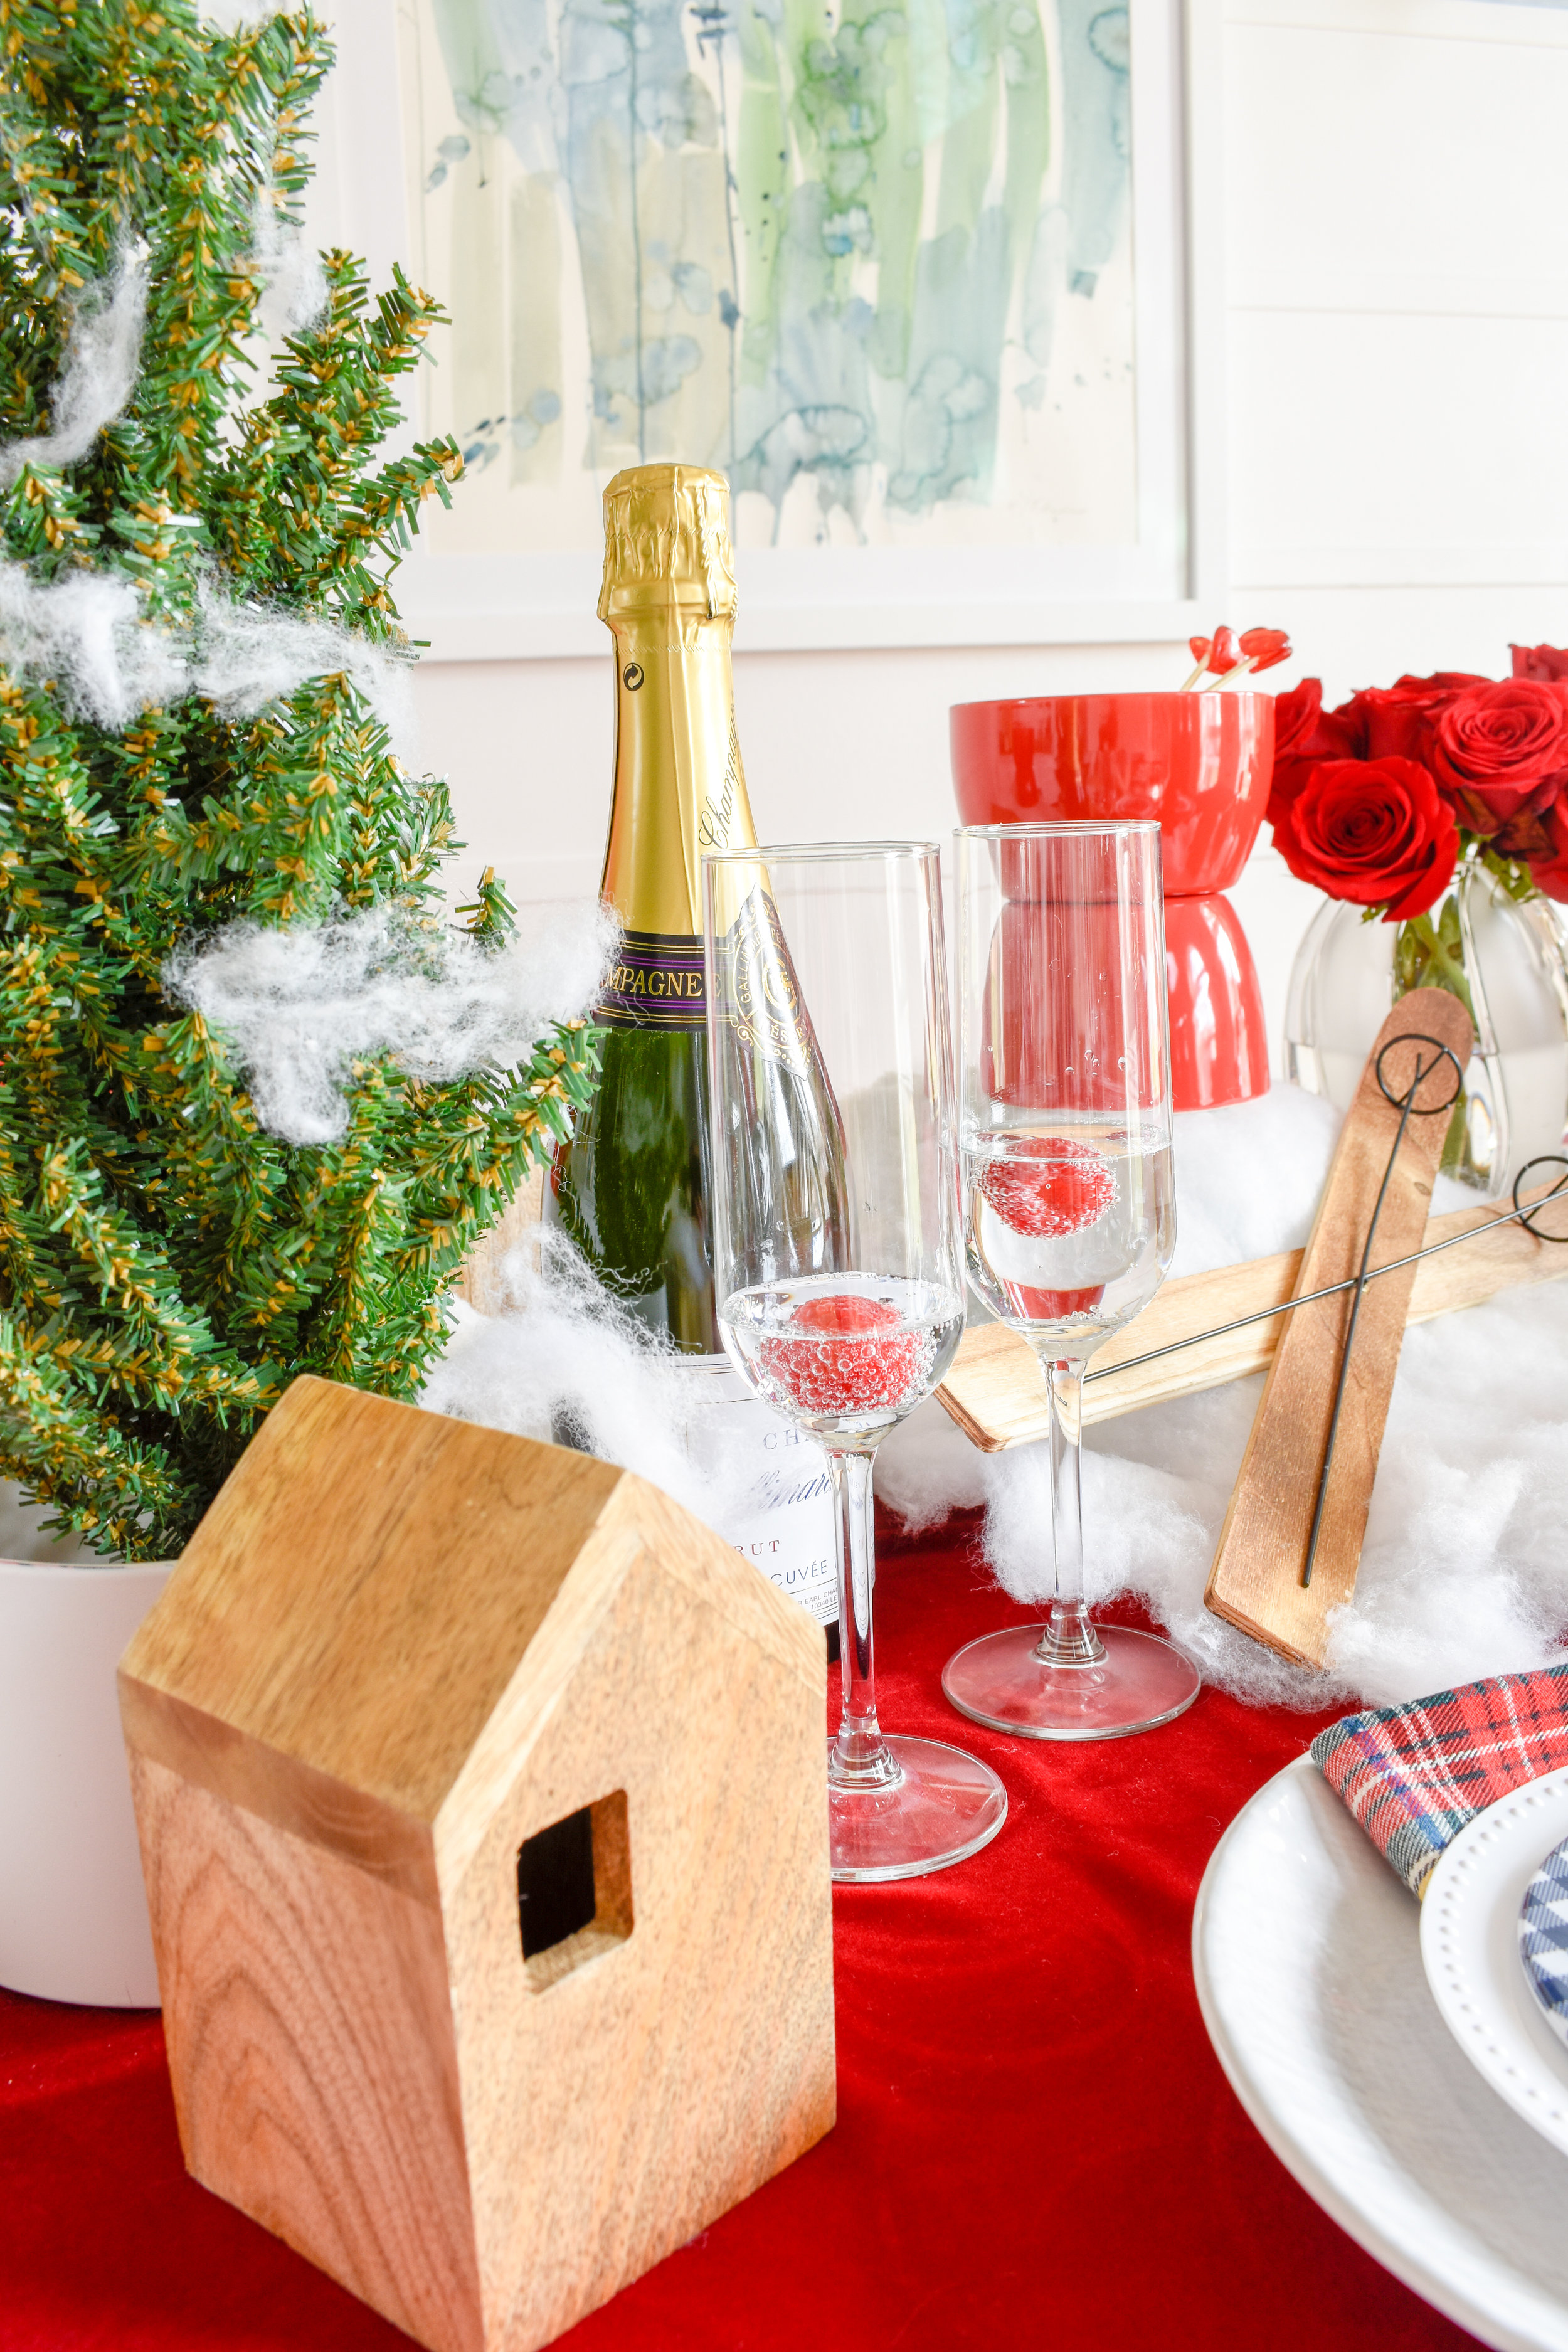 Galentine's Day Ideas | A Romantic Ski Chalet: How To Re-Use Your Christmas Decor for Valentine's Day  I've left my Christmas decor up a little longer and really stretched its life by transferring it into this adorable - and romantic - chalet tablescape. Today I'm showing you how I DIYed it and how you can too! #romance #valentinesday #bemine